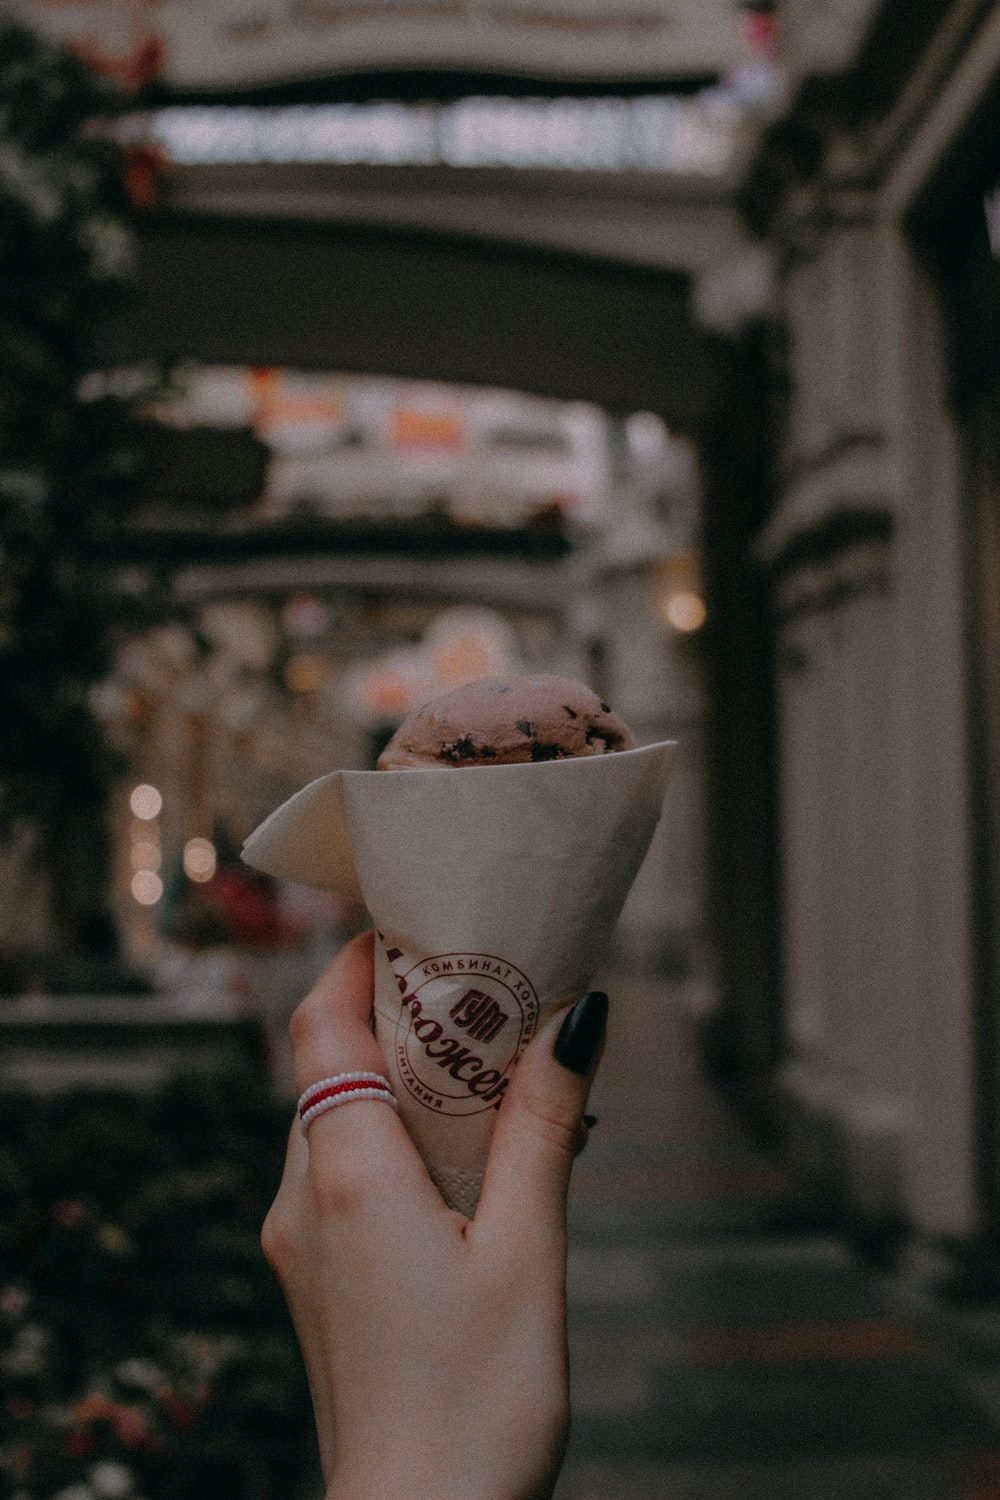 person holding ice cream cone